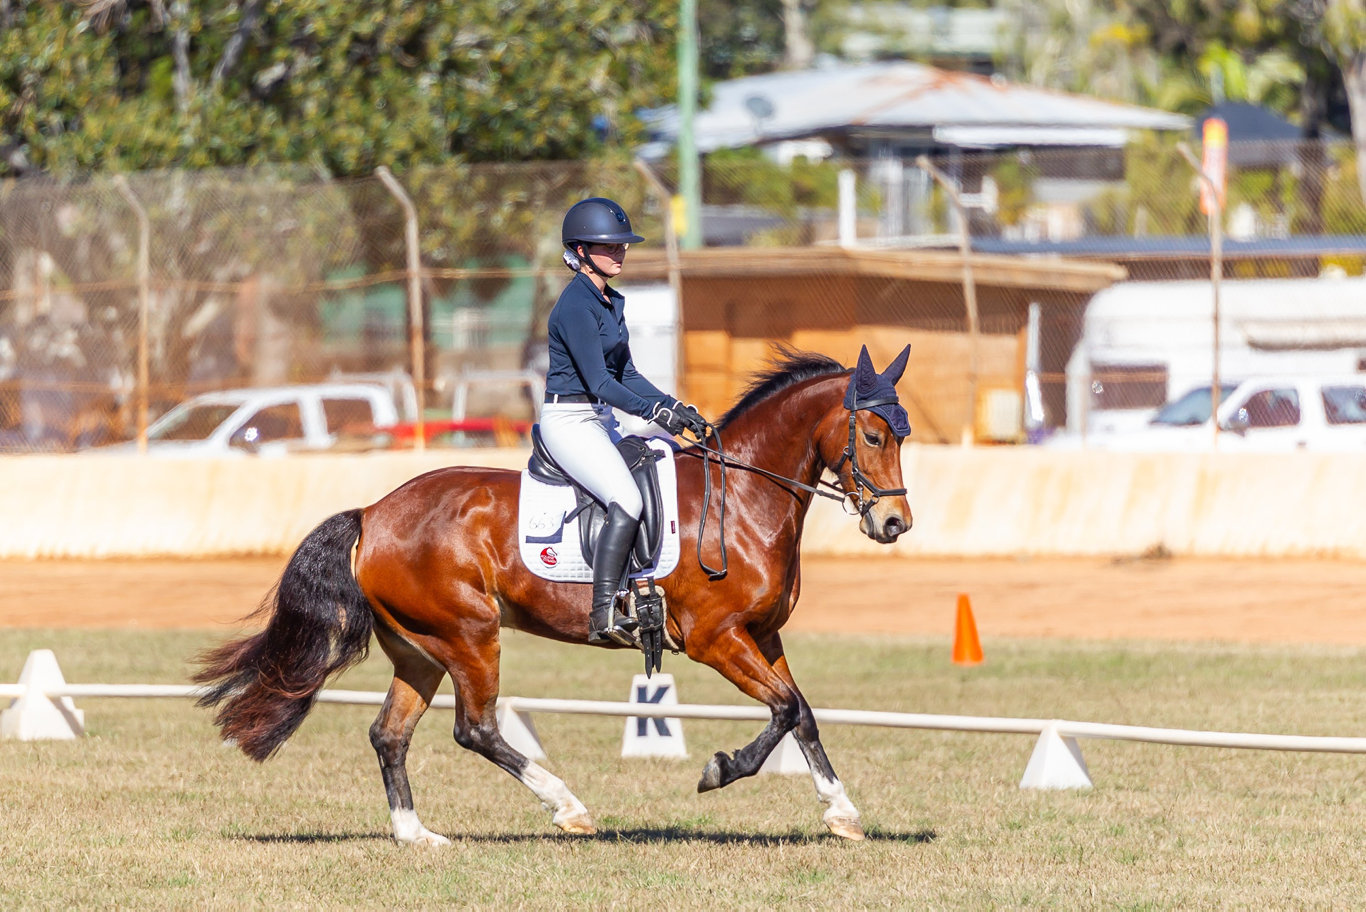 Competitors in action at the recent Lockyer Equestrian Group dressage day. Photo: Braid Up Photography.